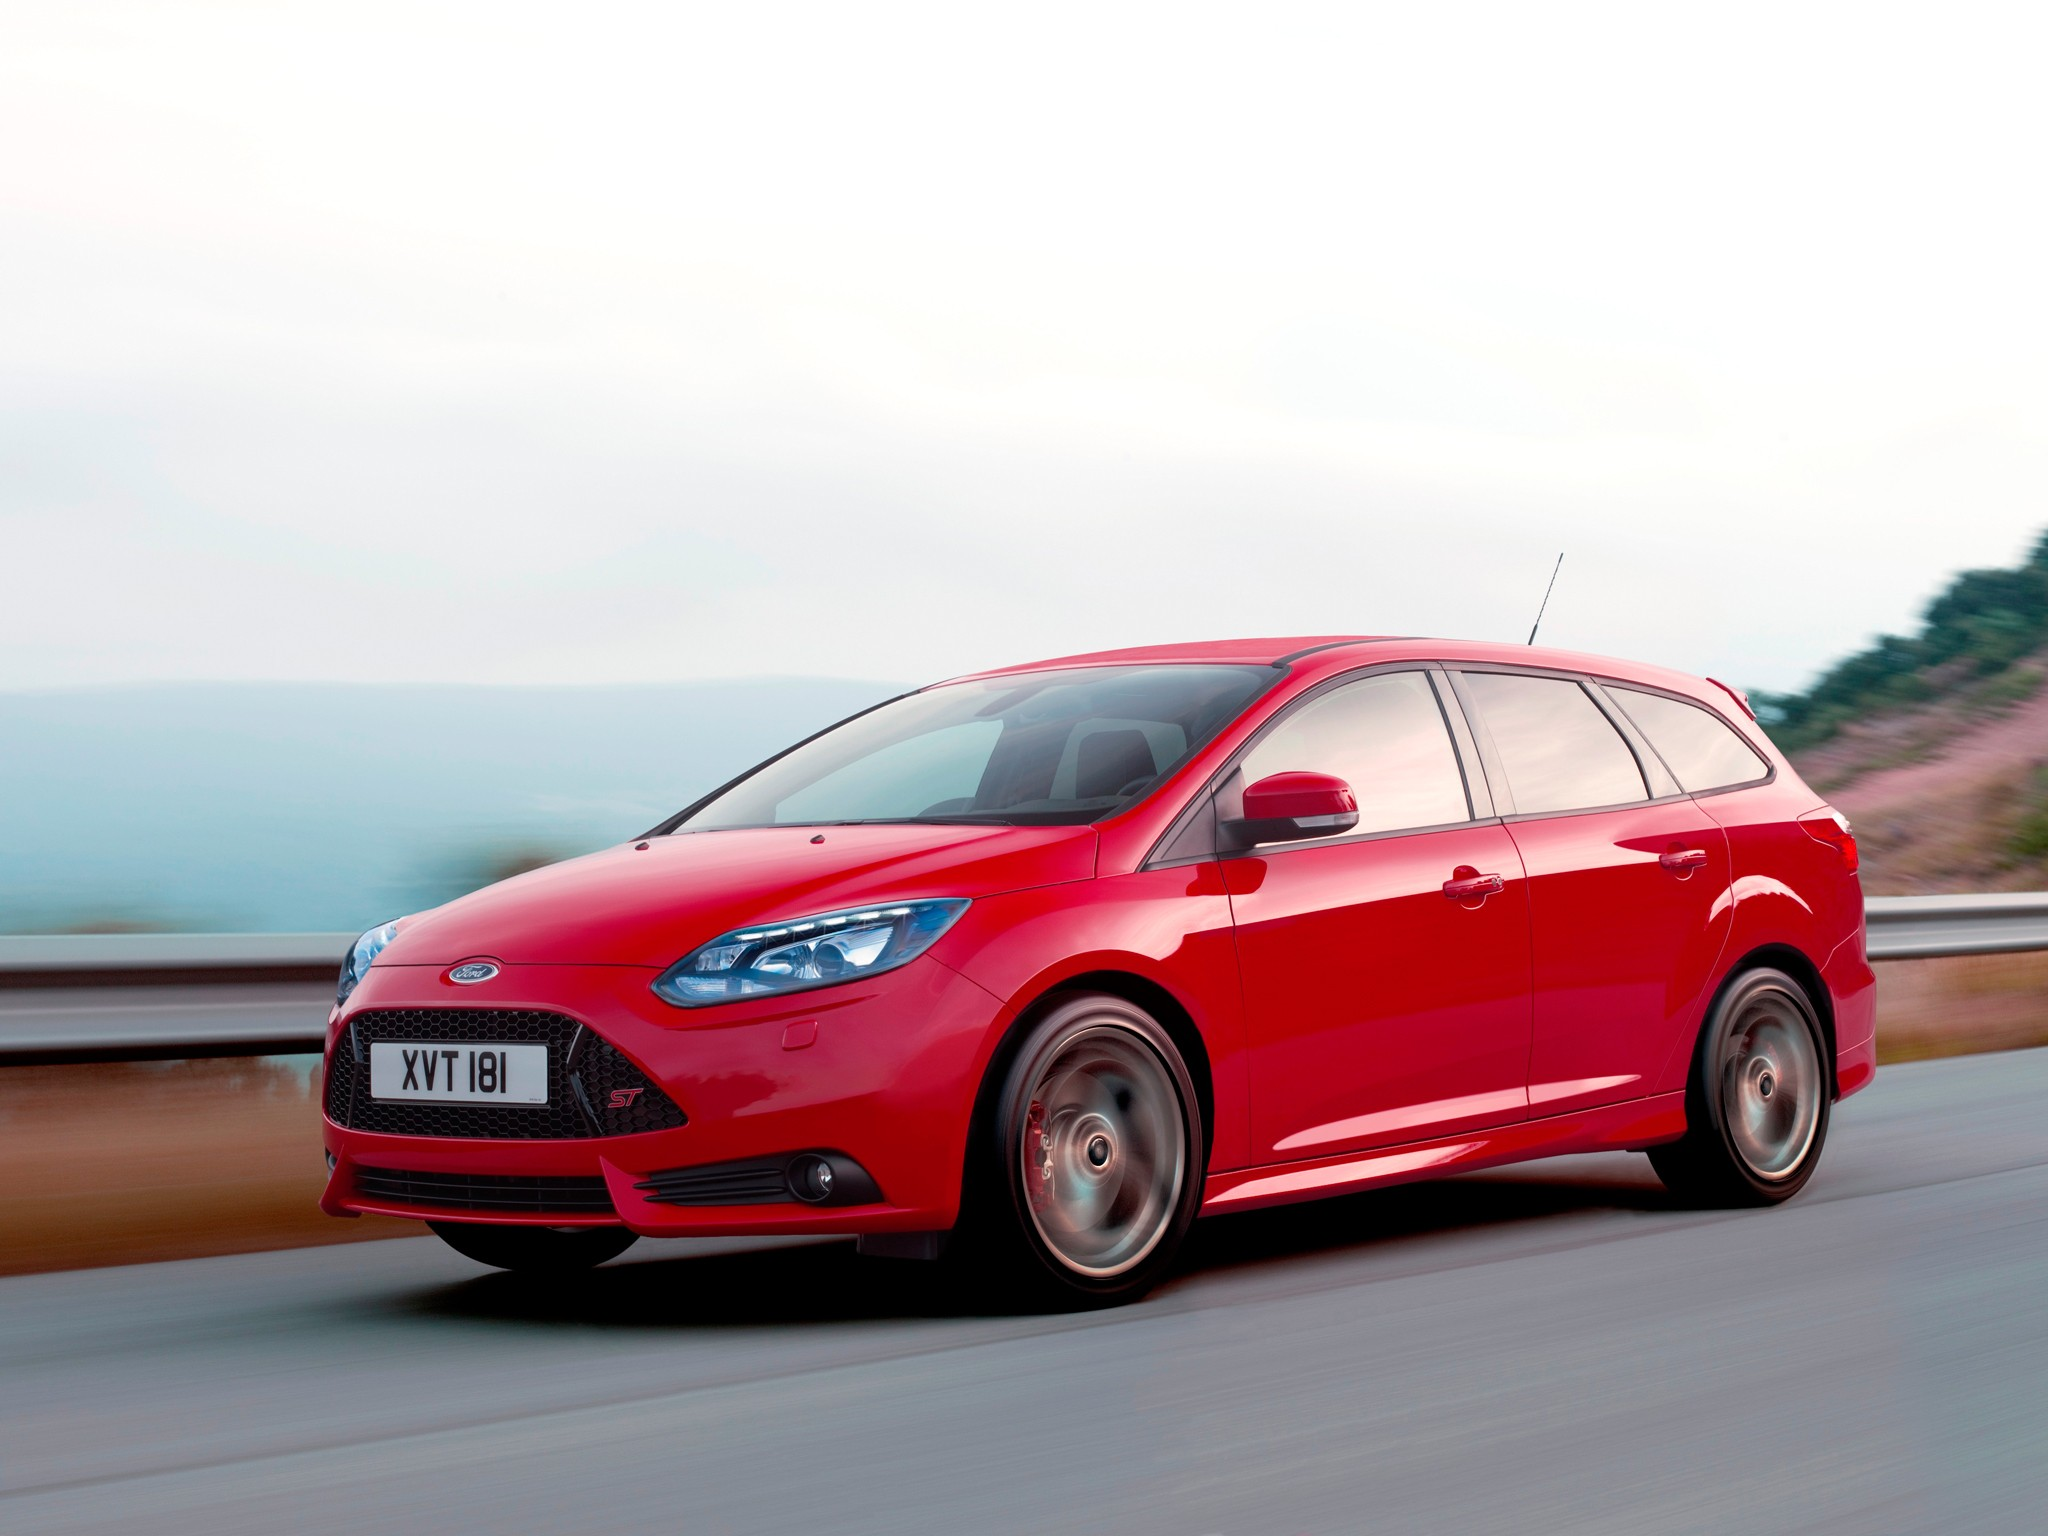 ford focus st estate specs photos 2012 2013 2014 2015 2016 2017 2018 autoevolution. Black Bedroom Furniture Sets. Home Design Ideas